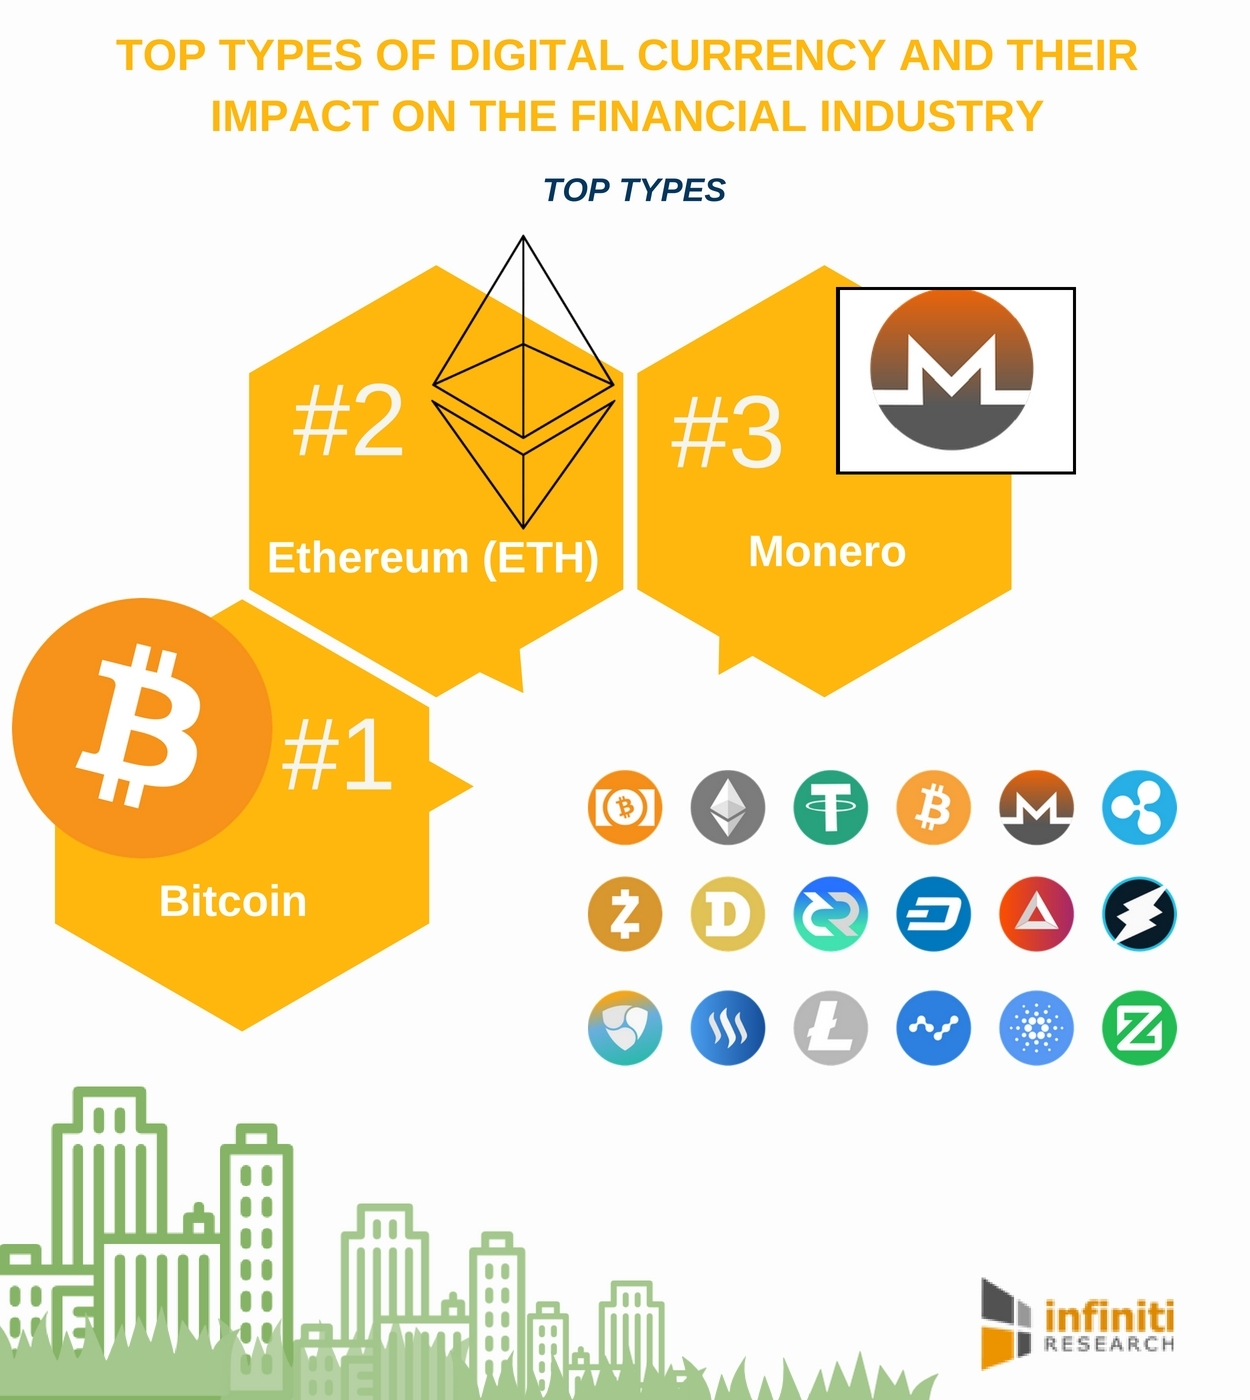 different types of digital currency and their impact on the